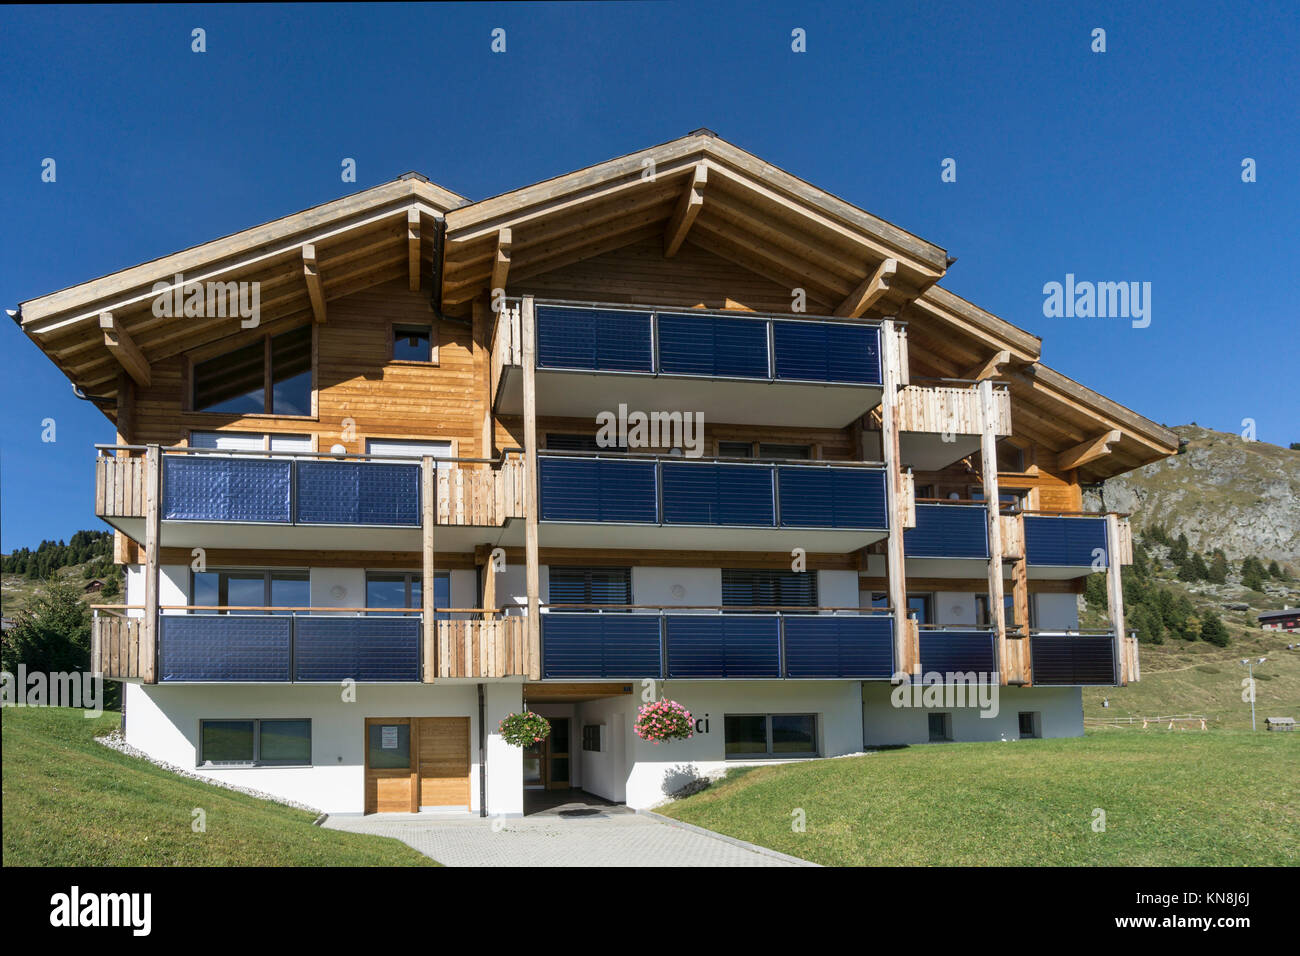 Private house with soloar panals, Riederalp, Valis, Switzerland - Stock Image